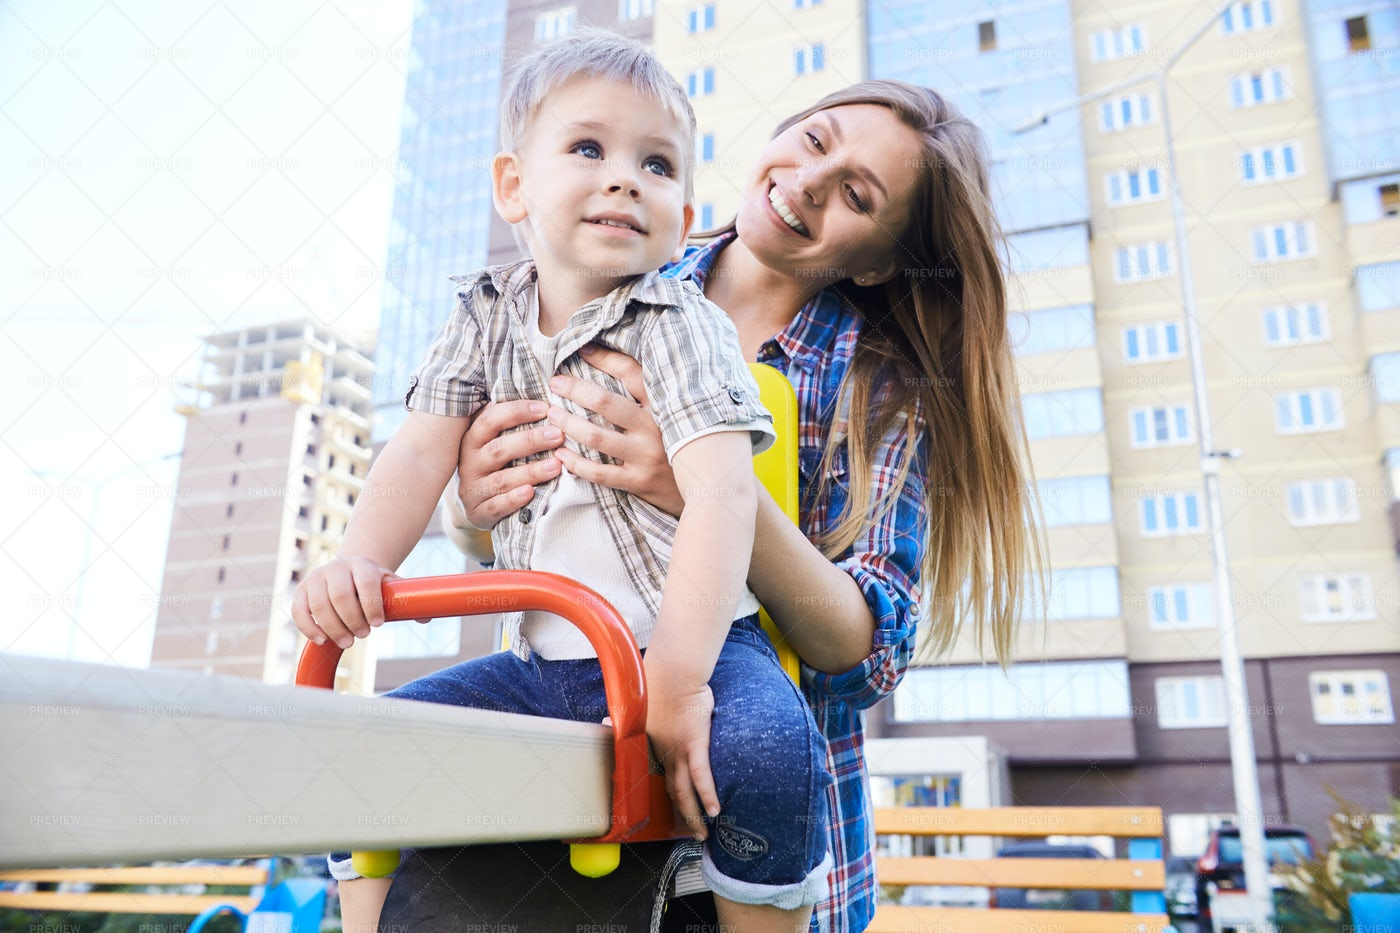 Mother And Son On Playground: Stock Photos